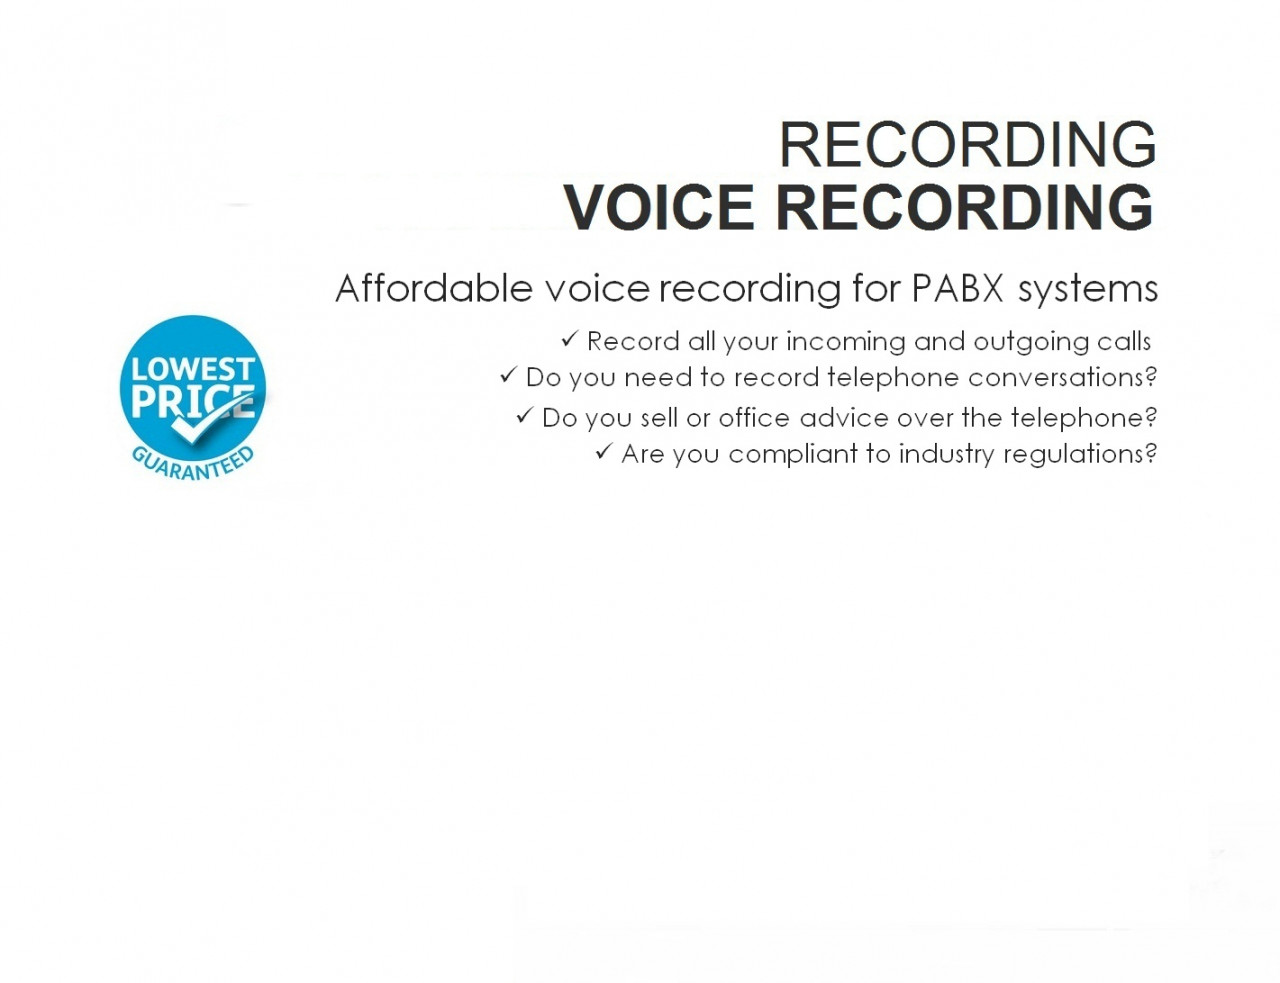 Voice call recording of all your incoming and outgoing telephone calls.